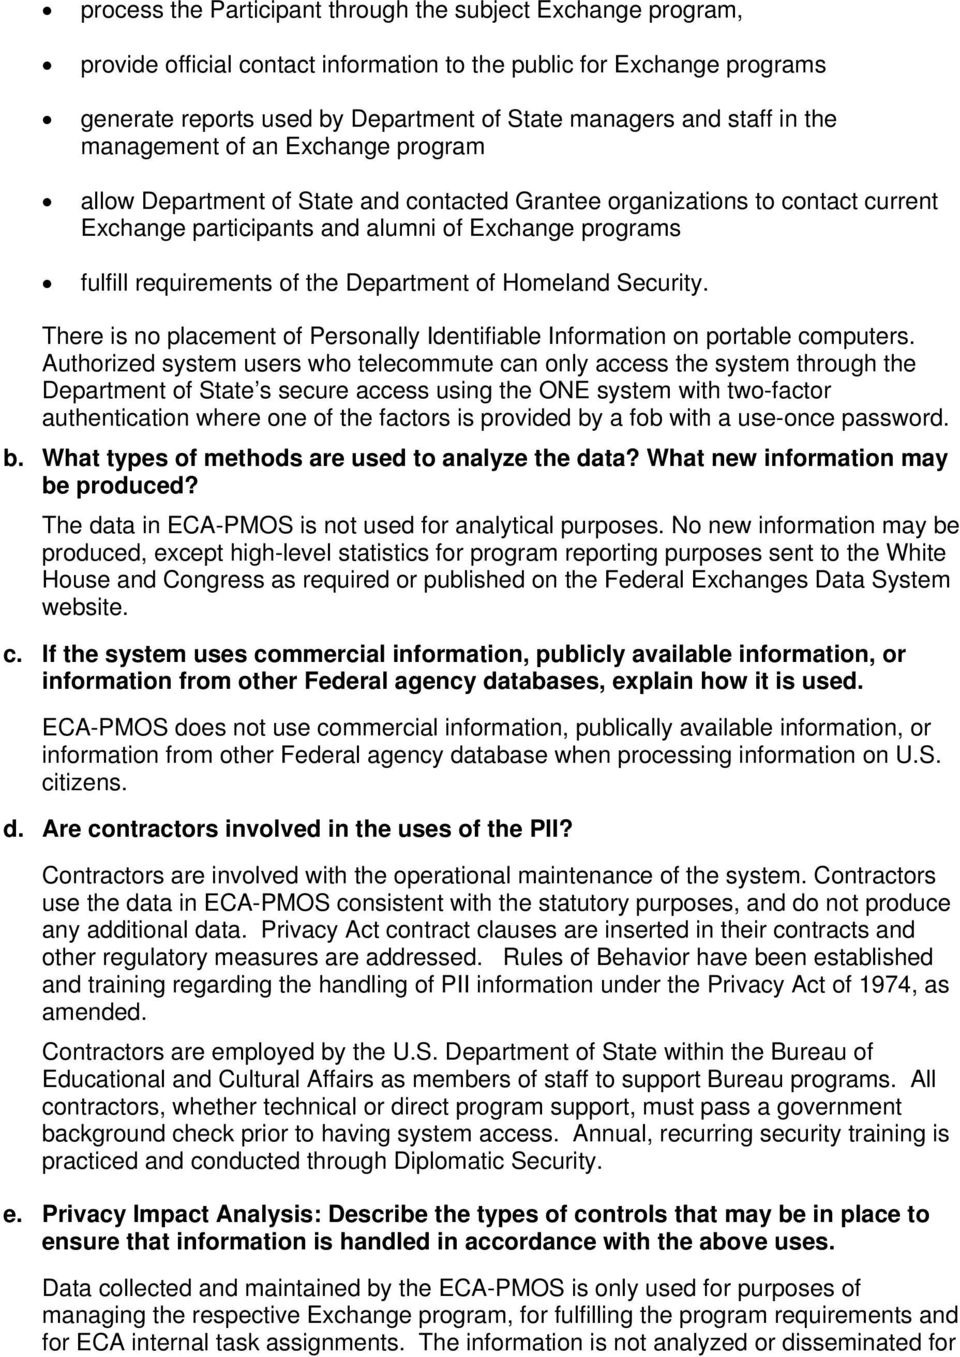 the Department of Homeland Security. There is no placement of Personally Identifiable Information on portable computers.